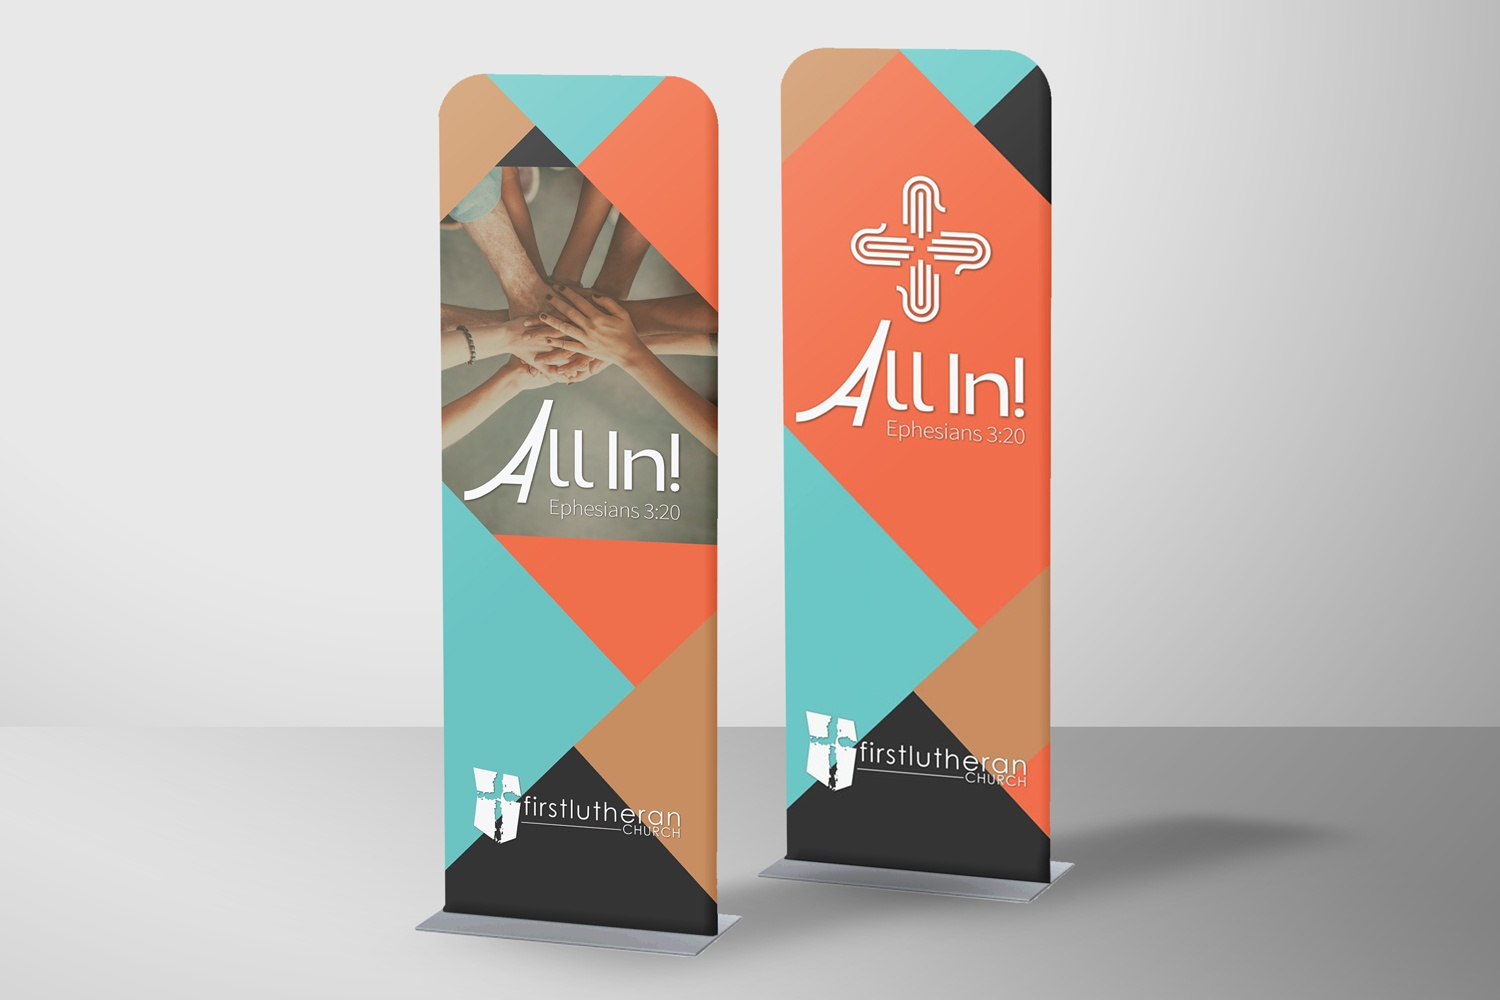 Sleeve Banners for church stewardship materials, capital campaign ideas